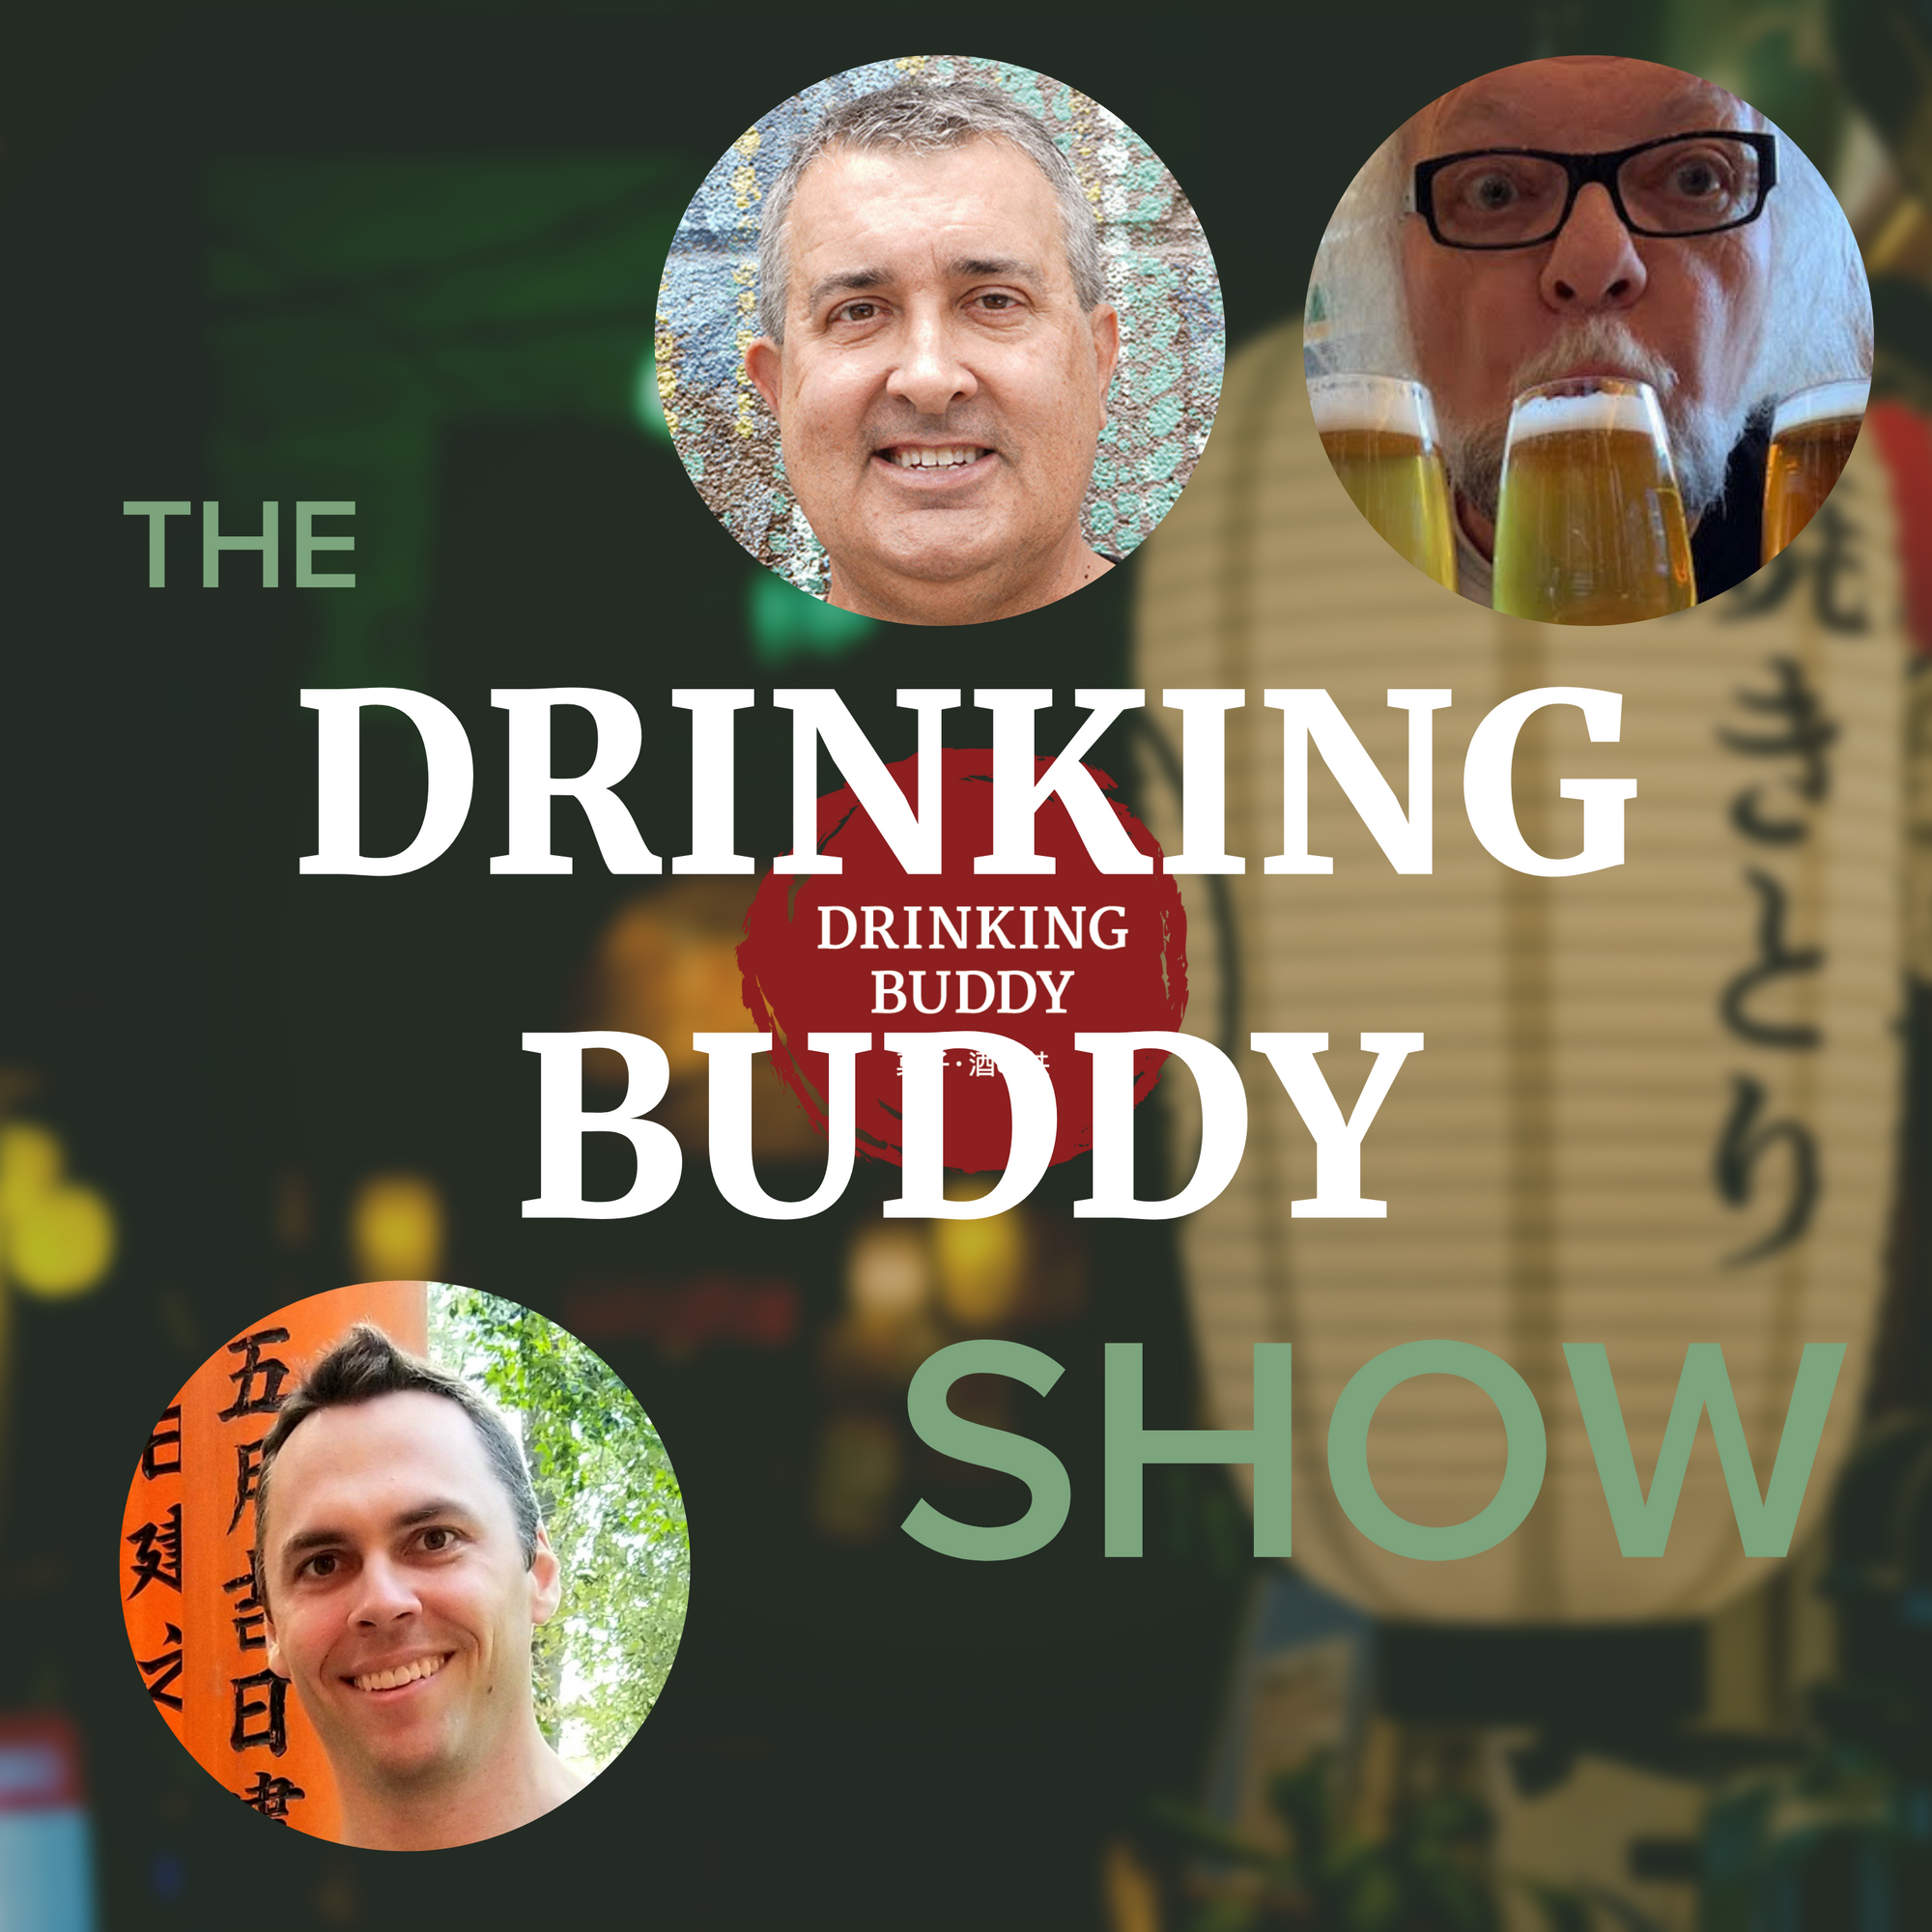 The Drinking Buddy Show Episode 11: Daniel Drennon & Tom Carroll of Beer Paper LA